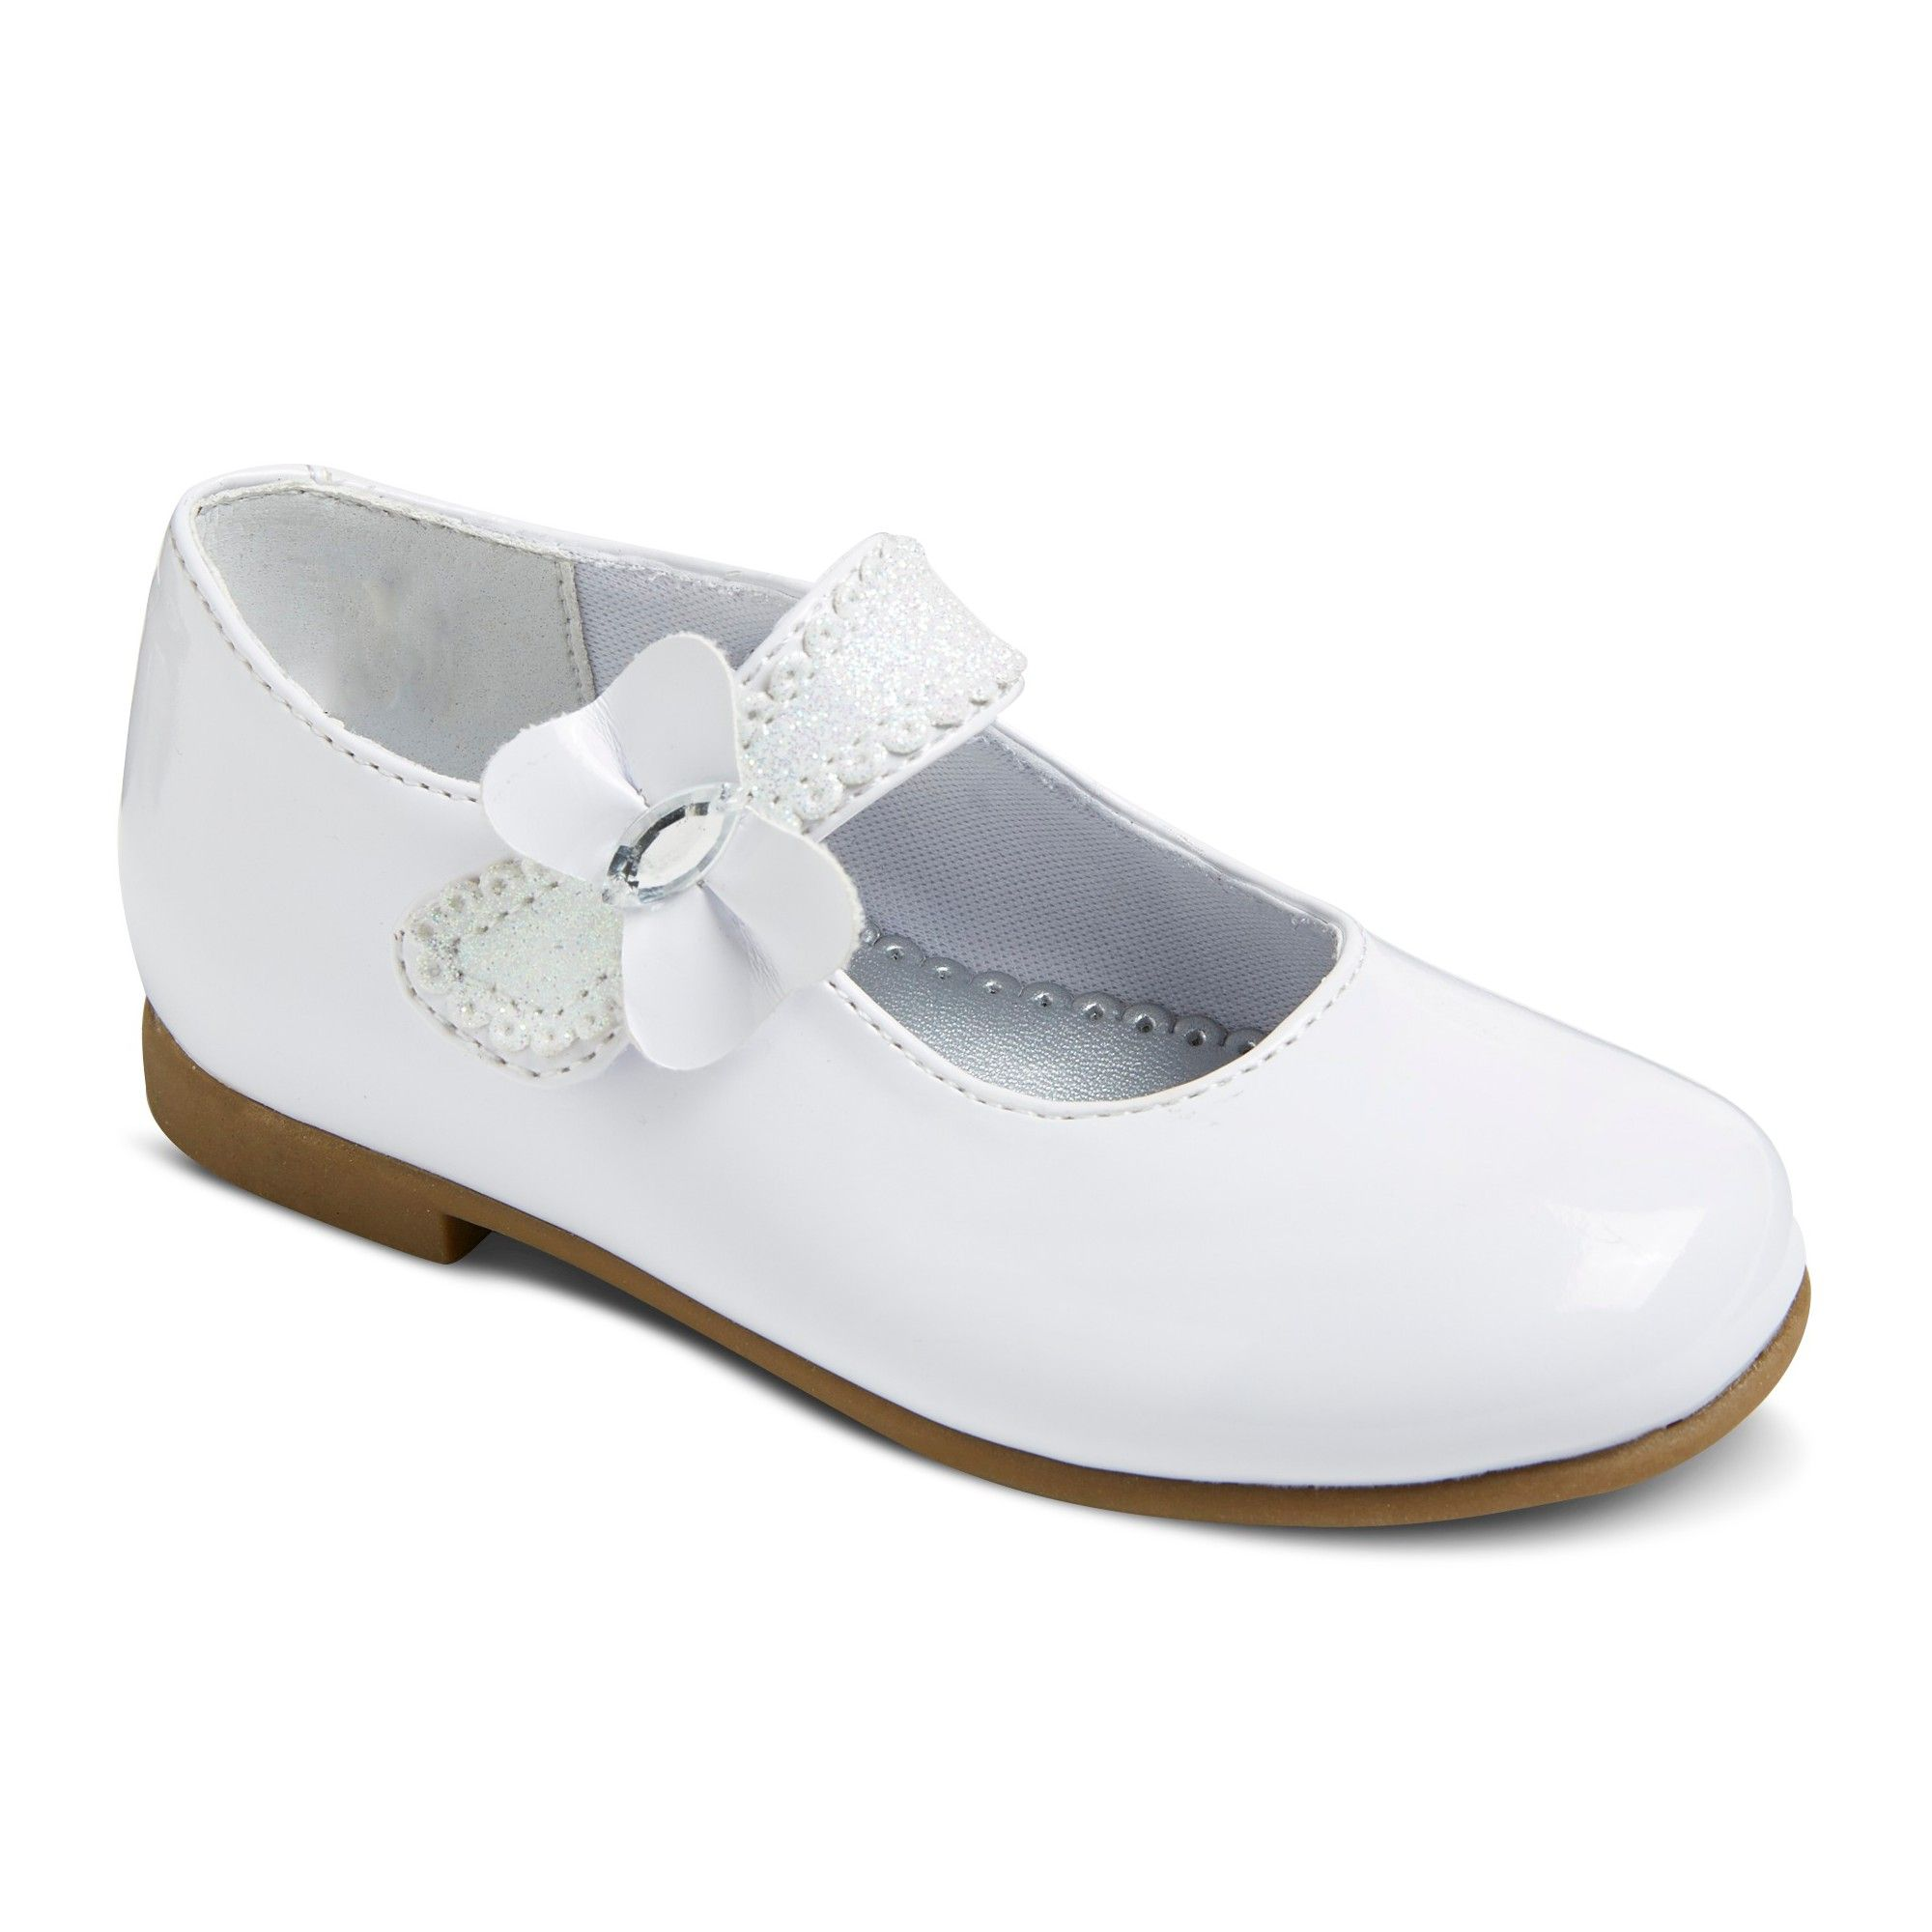 bfd60bed7 Toddler Girls  Rachel Shoes Laurel Mary Jane Ballet Flats - White 10 ...